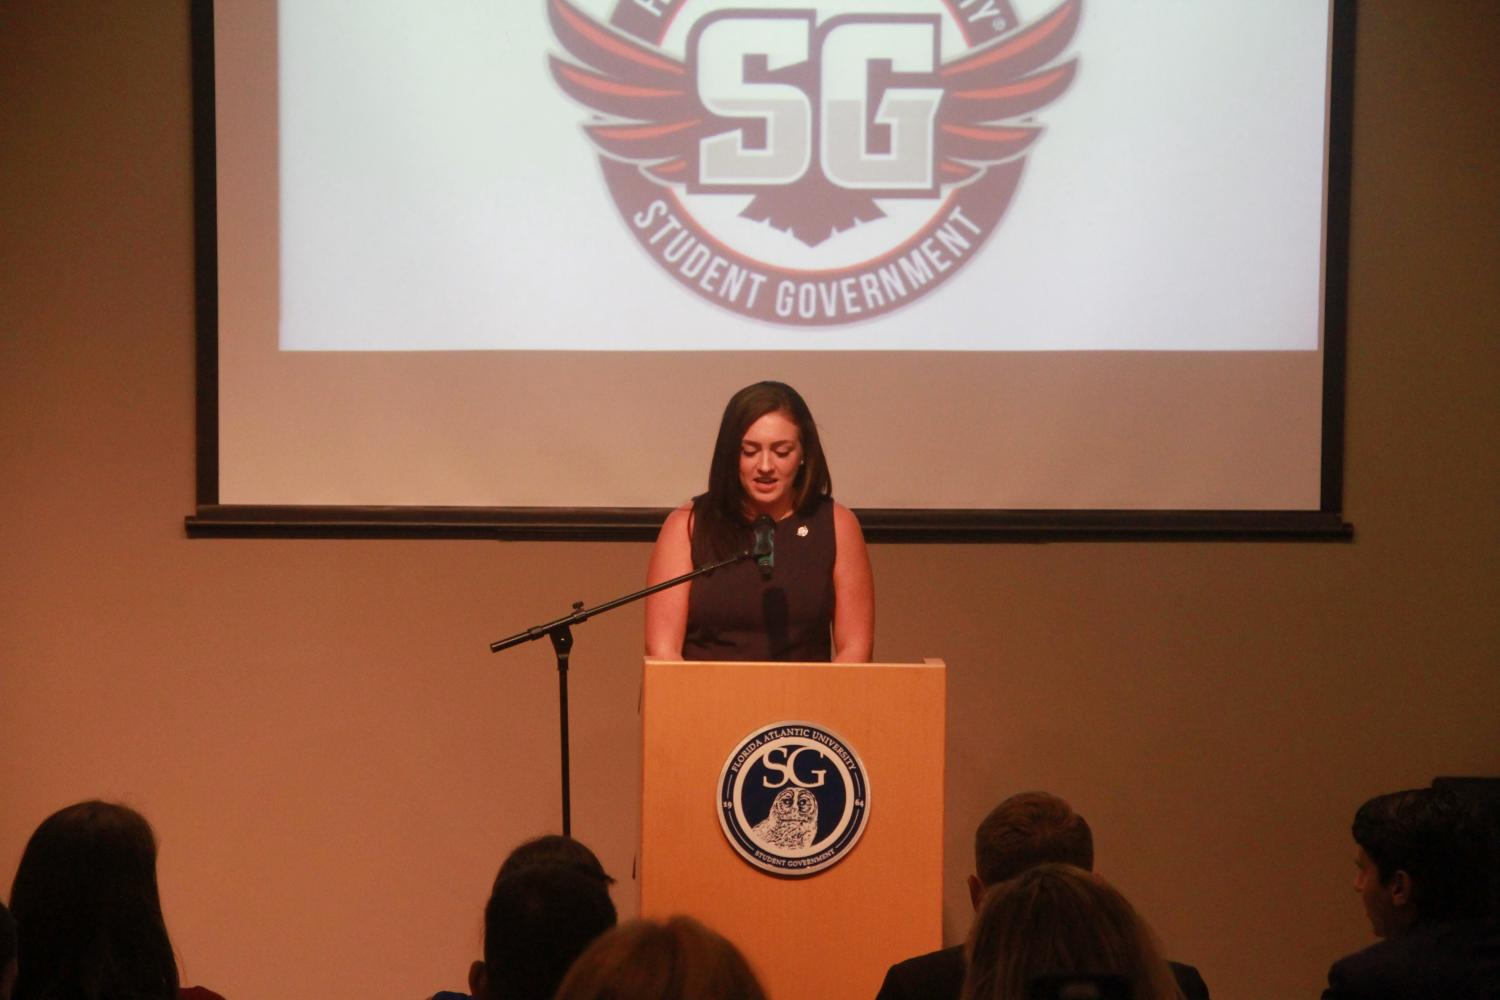 SG+President+Emily+Lawless+speaks+a+crowd+of+Student+Government+members%2C+FAU+police%2C+and+university+employees.+Joe+Pye+%7C+Editor+in+Chief